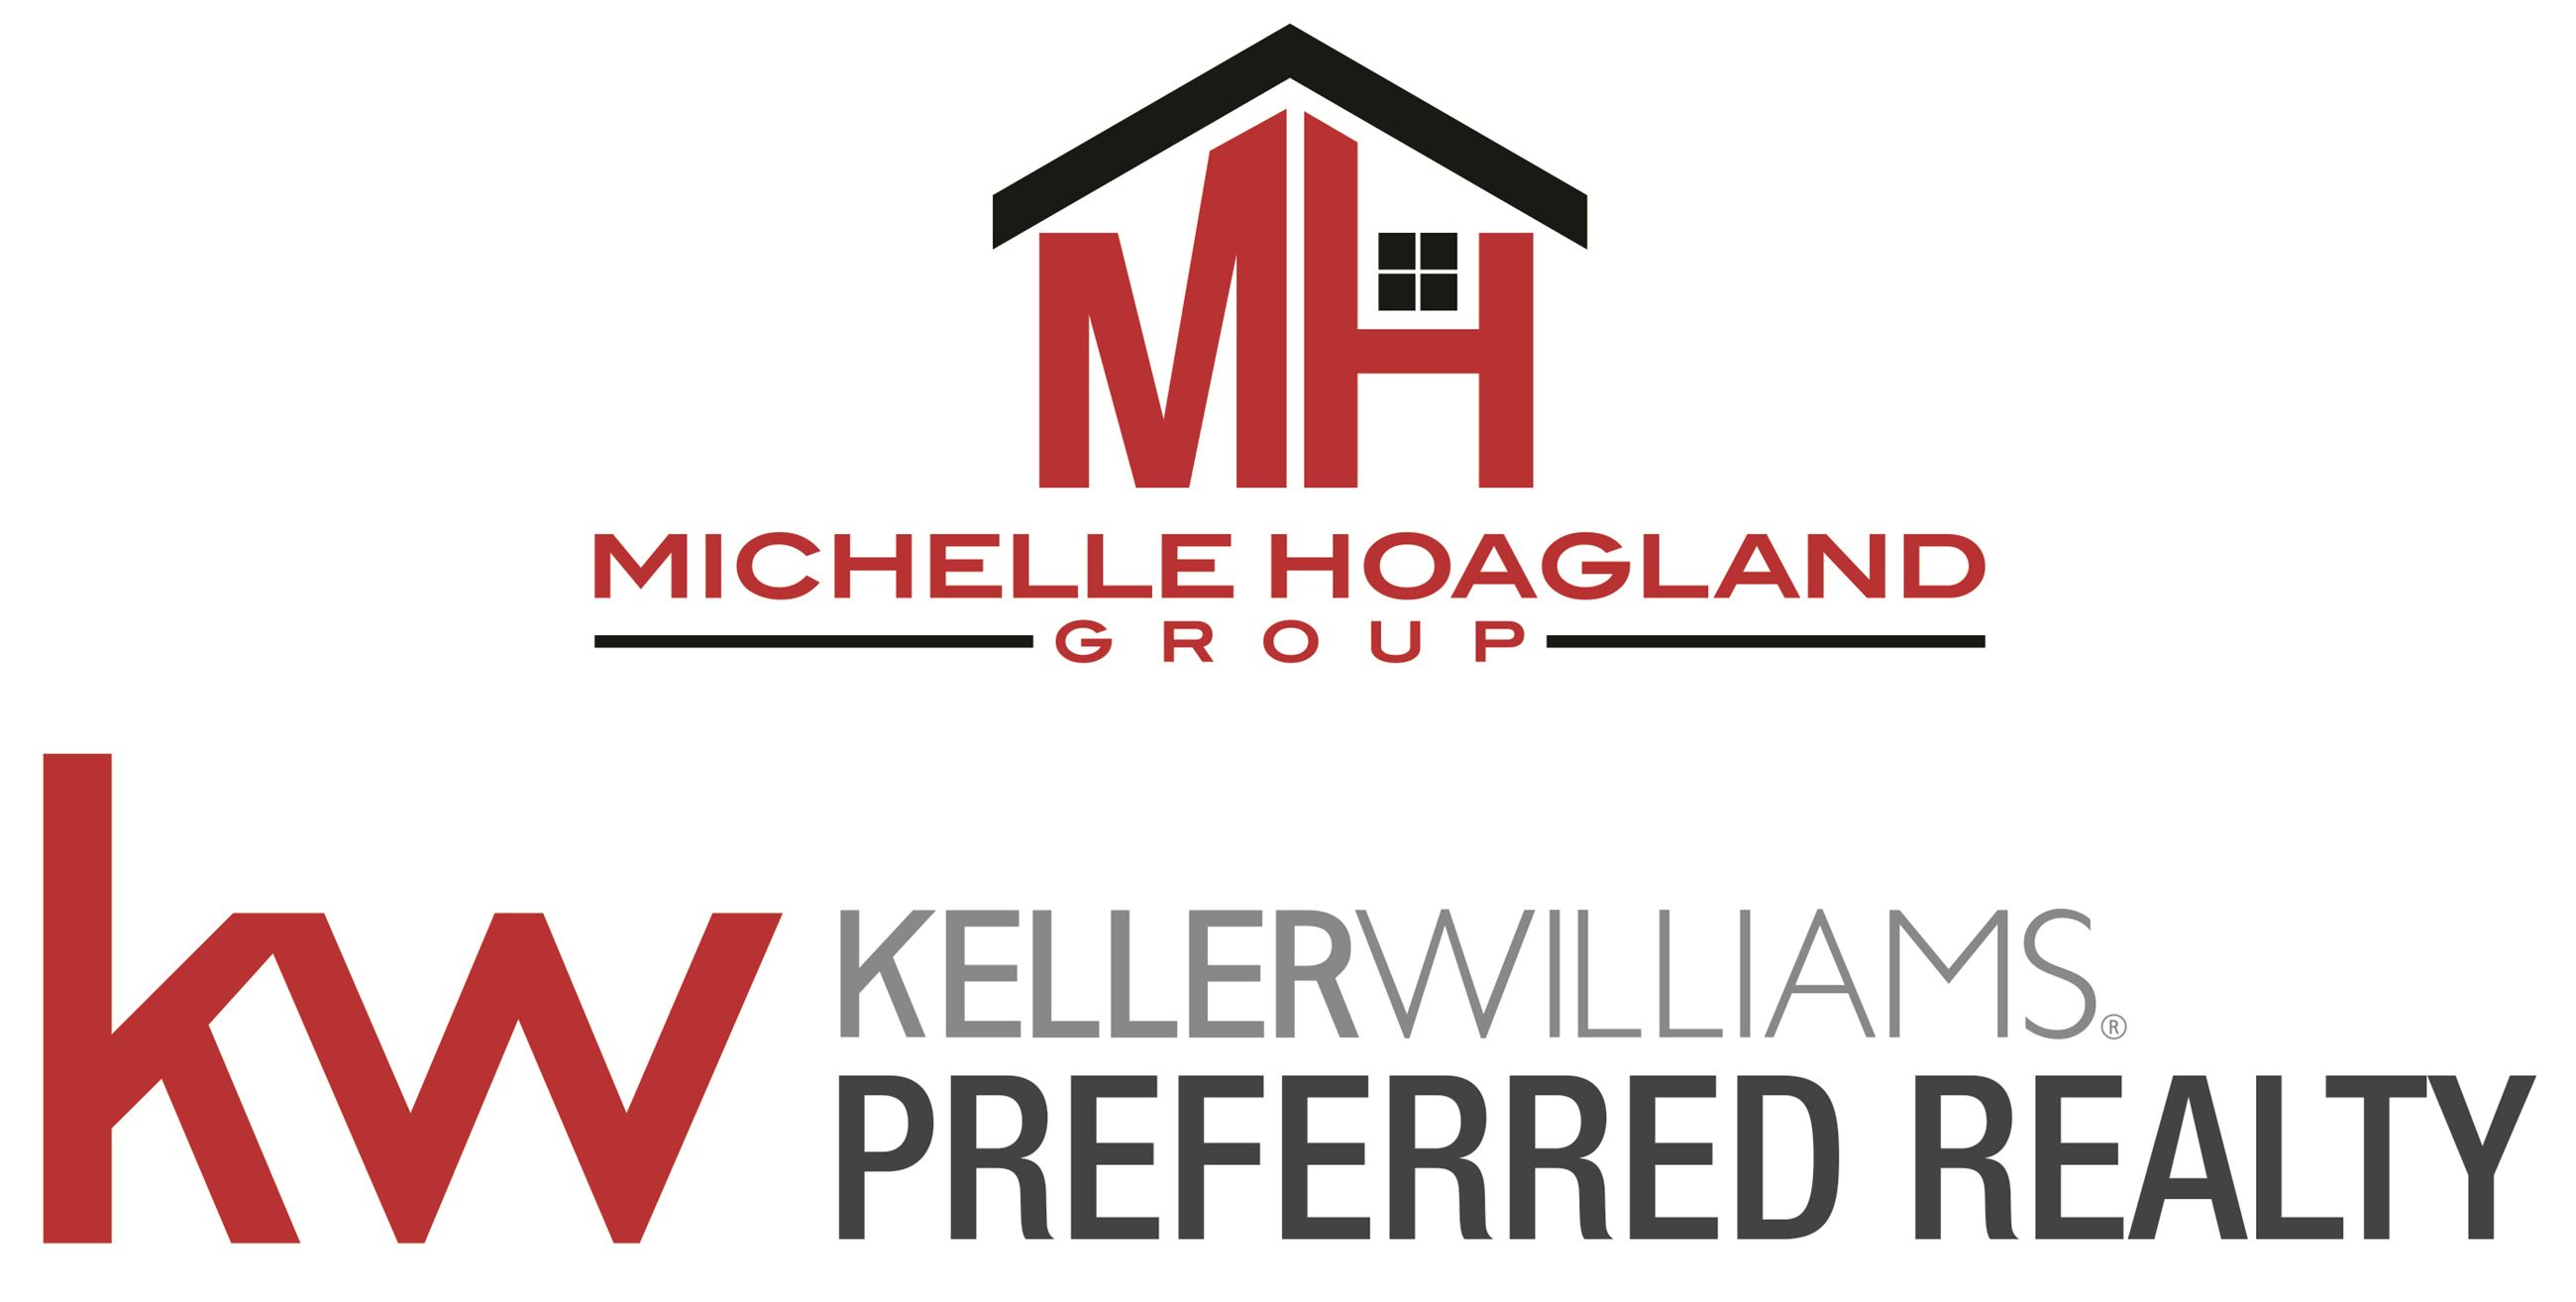 Michelle Hoagland Keller William's Logo